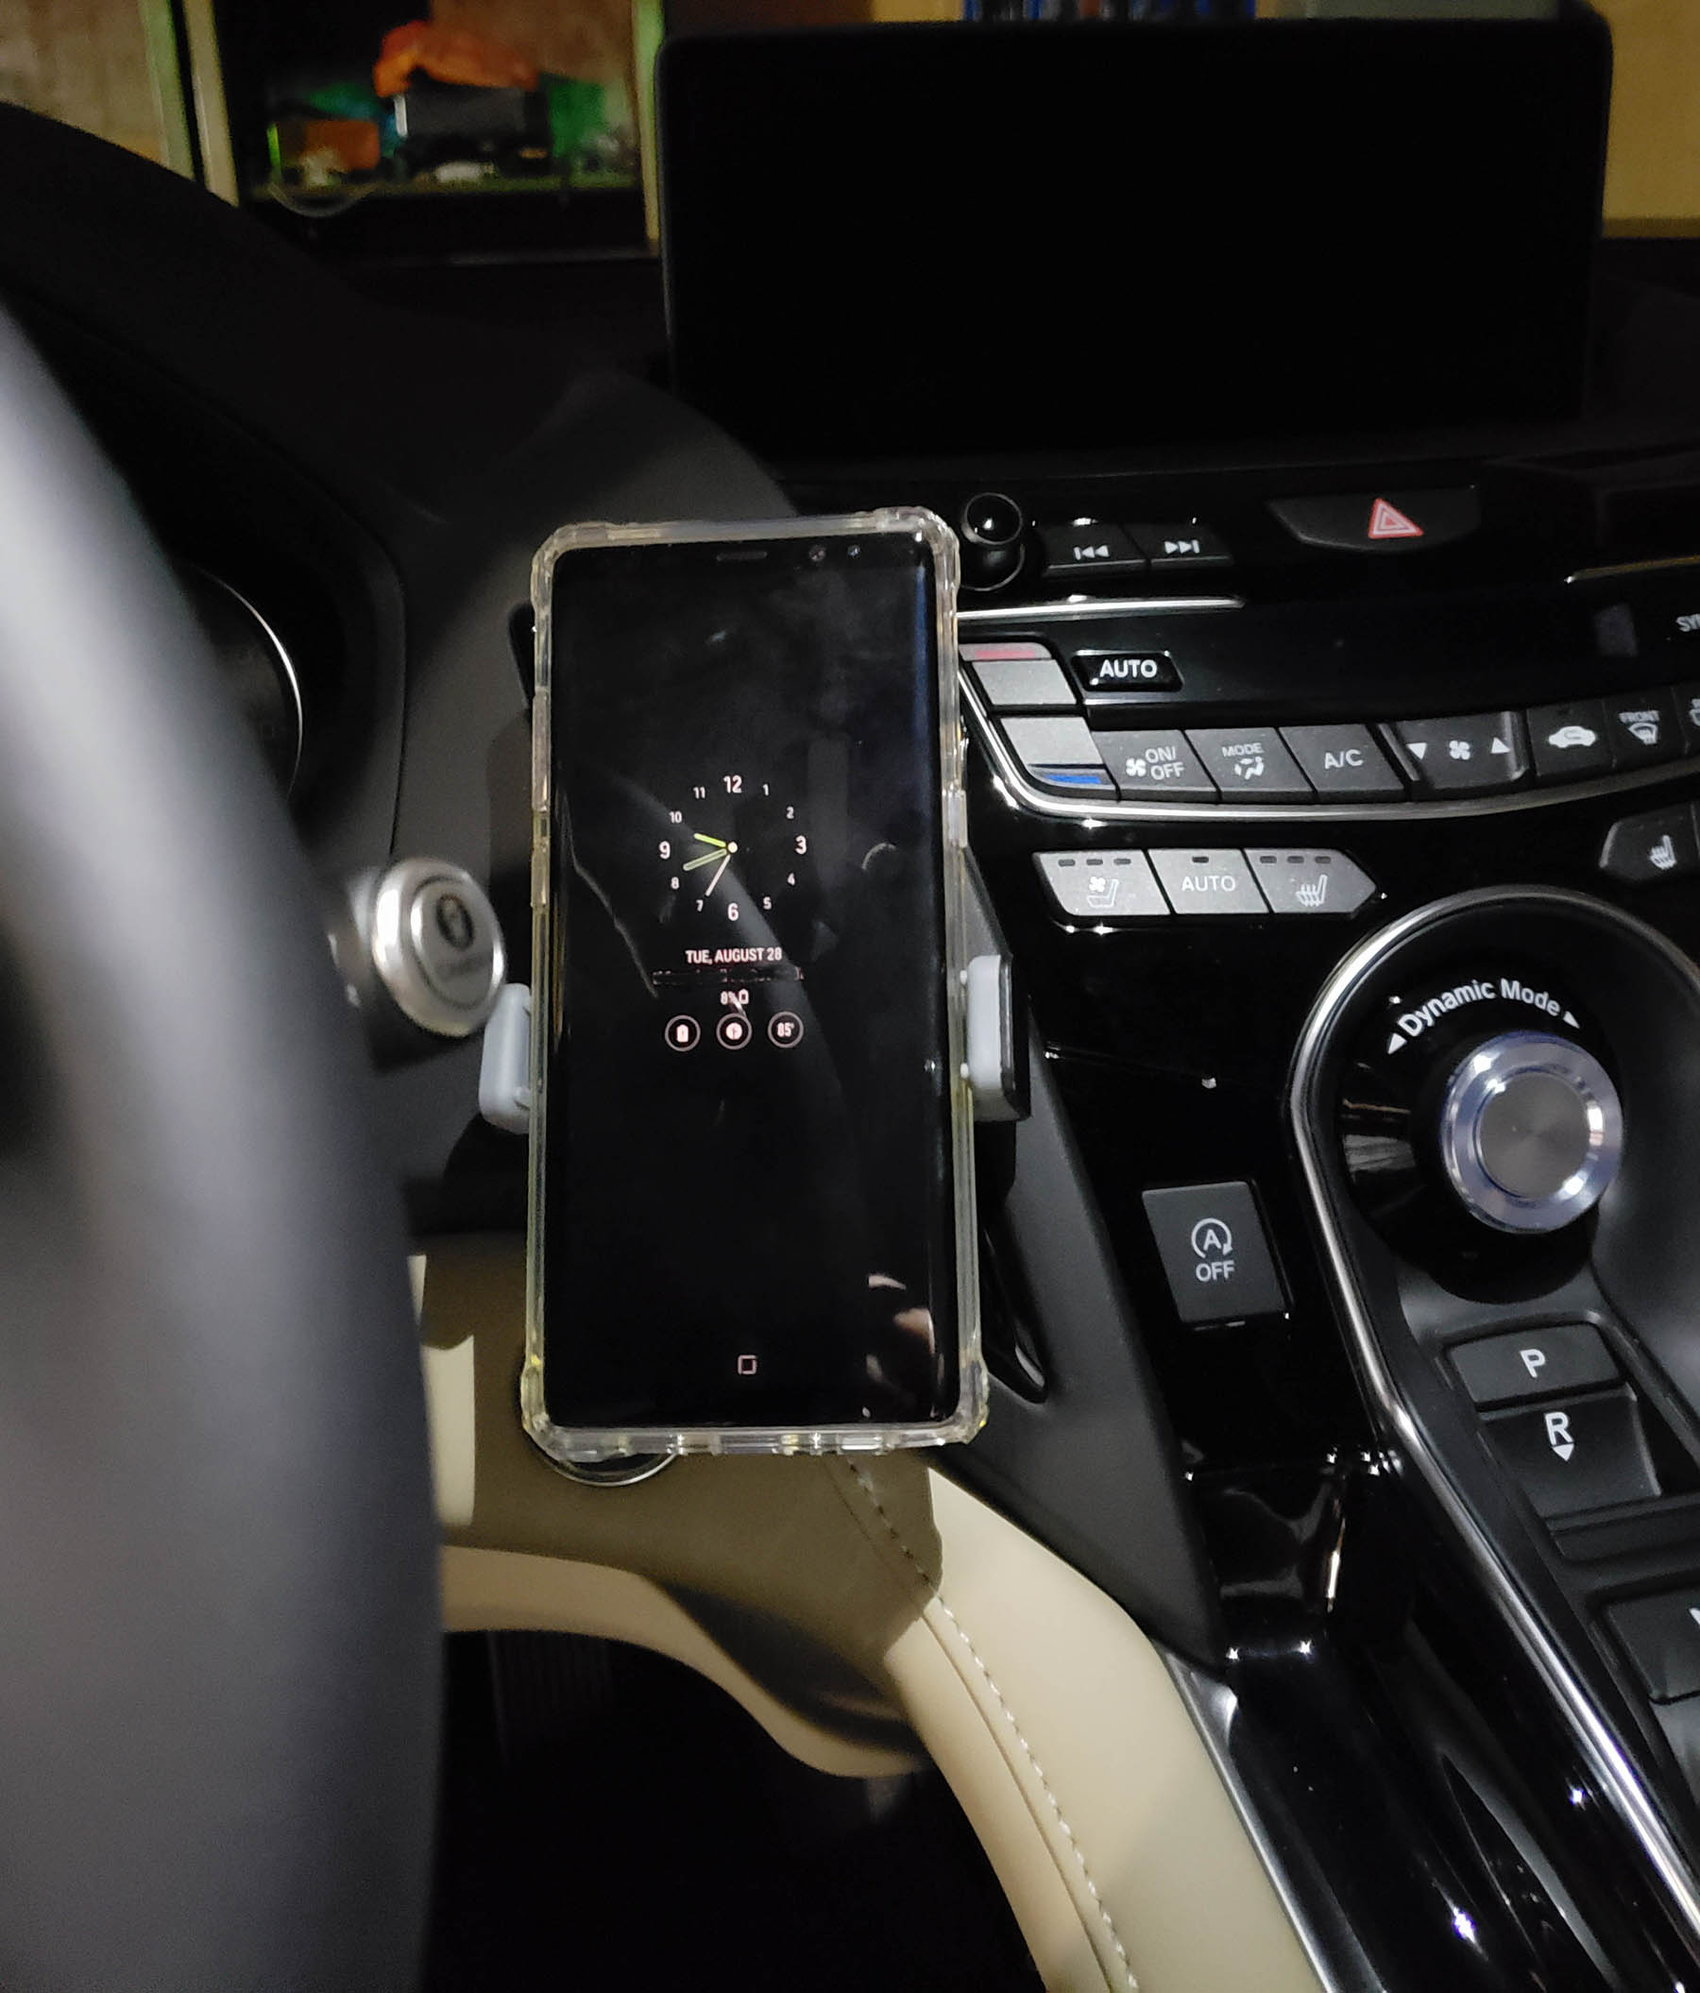 Android Auto, Wherefore Art Thou Android Auto